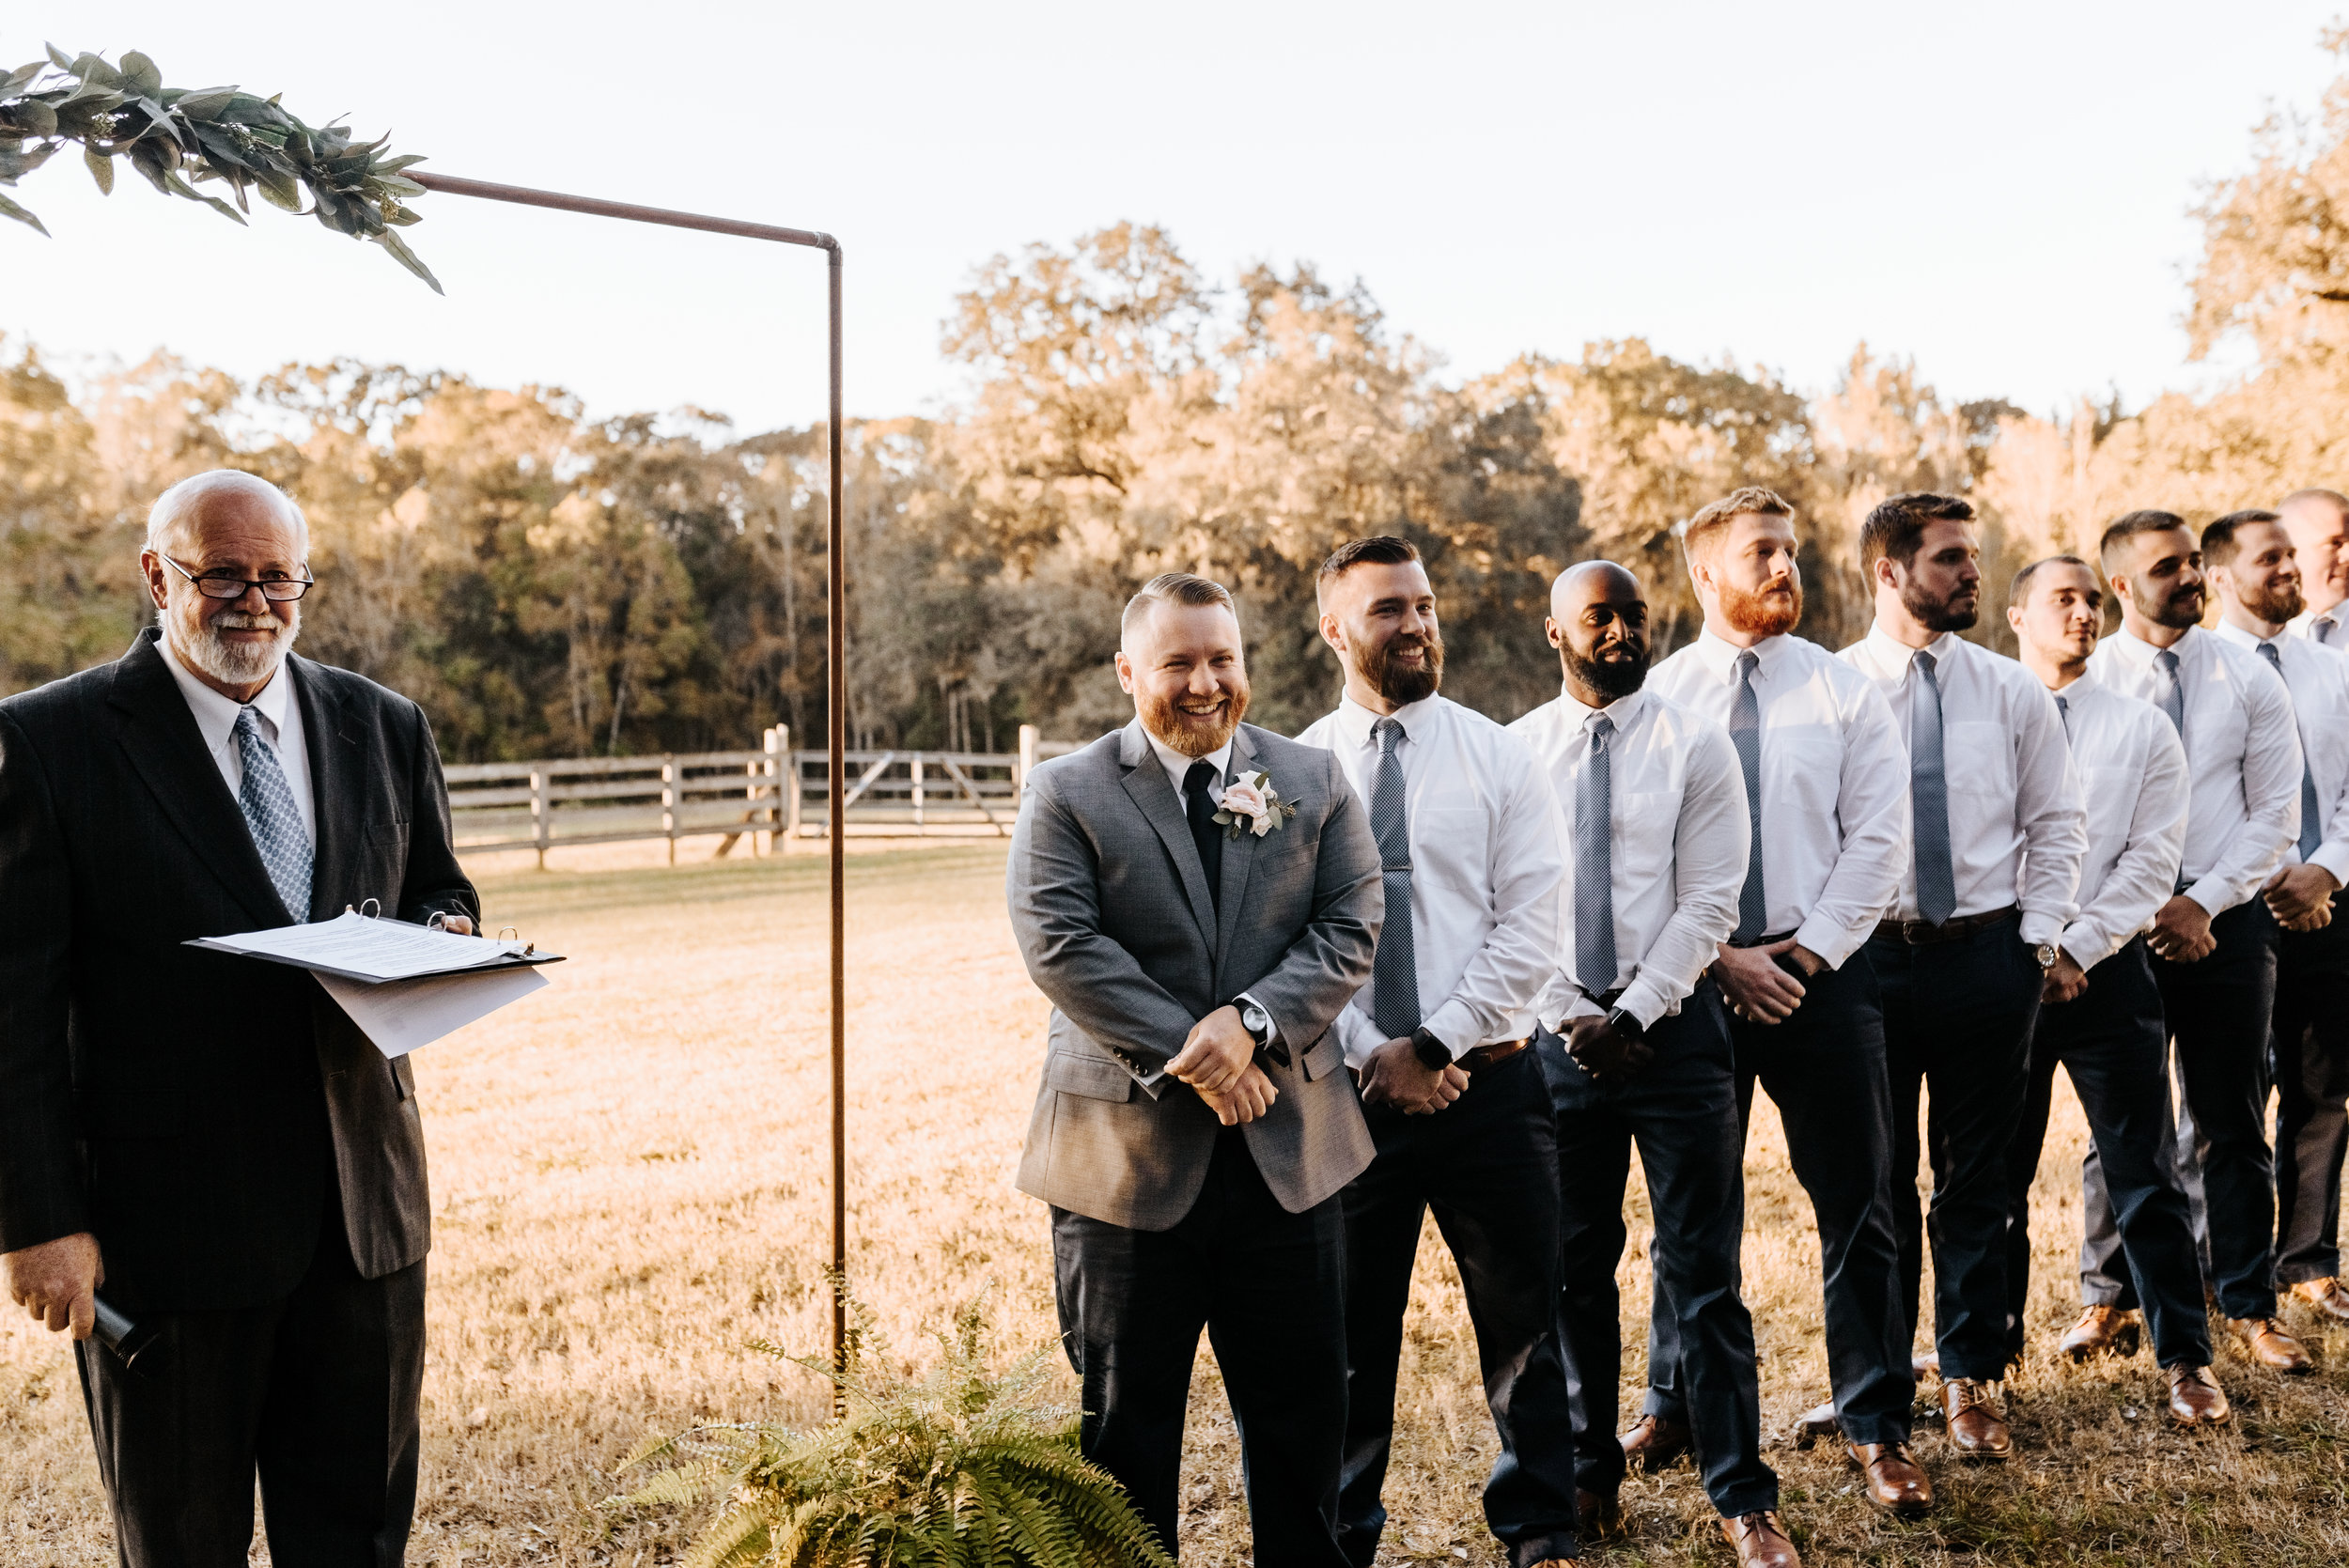 Morgan-Brandon-Wedding-All-4-One-Farms-Jacksonville-Florida-Photographer-Photography-by-V-6615.jpg